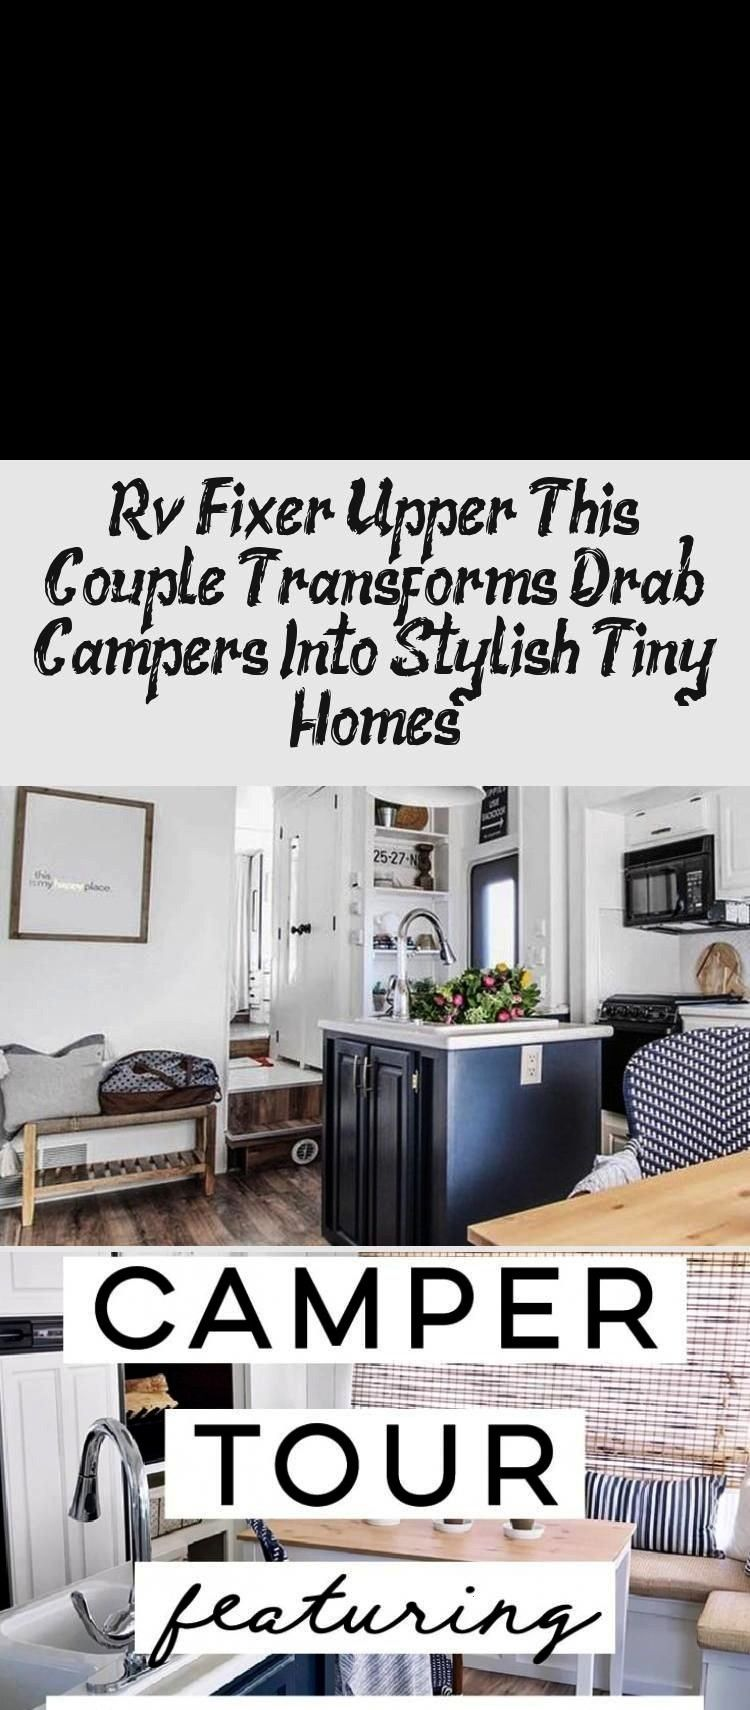 Fixer Upper: This Couple Transforms Drab Campers Into Stylish Tiny Homes! Rv Fixer Upper: This Coup